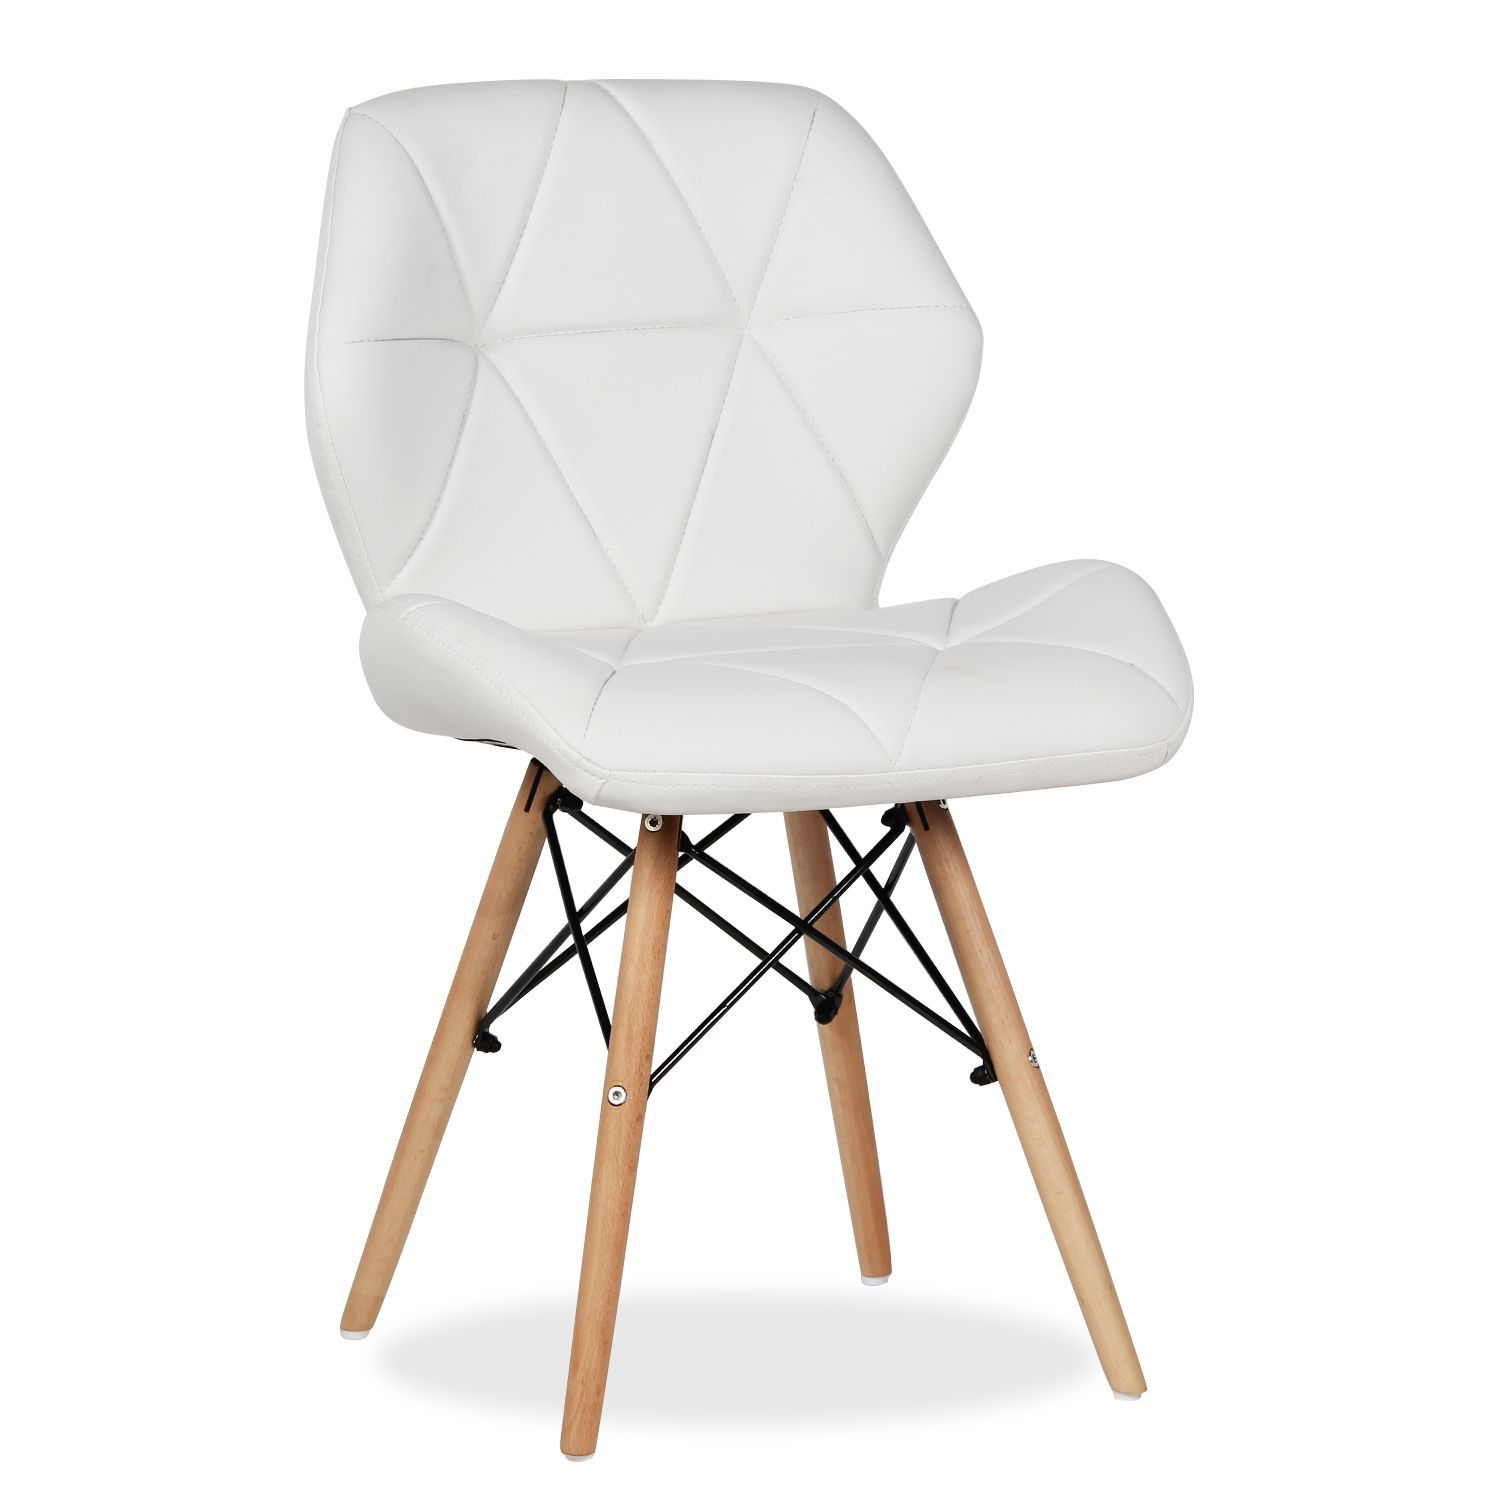 Chaise tower pentagone home sweet home pinterest for Chaise patchwork eames